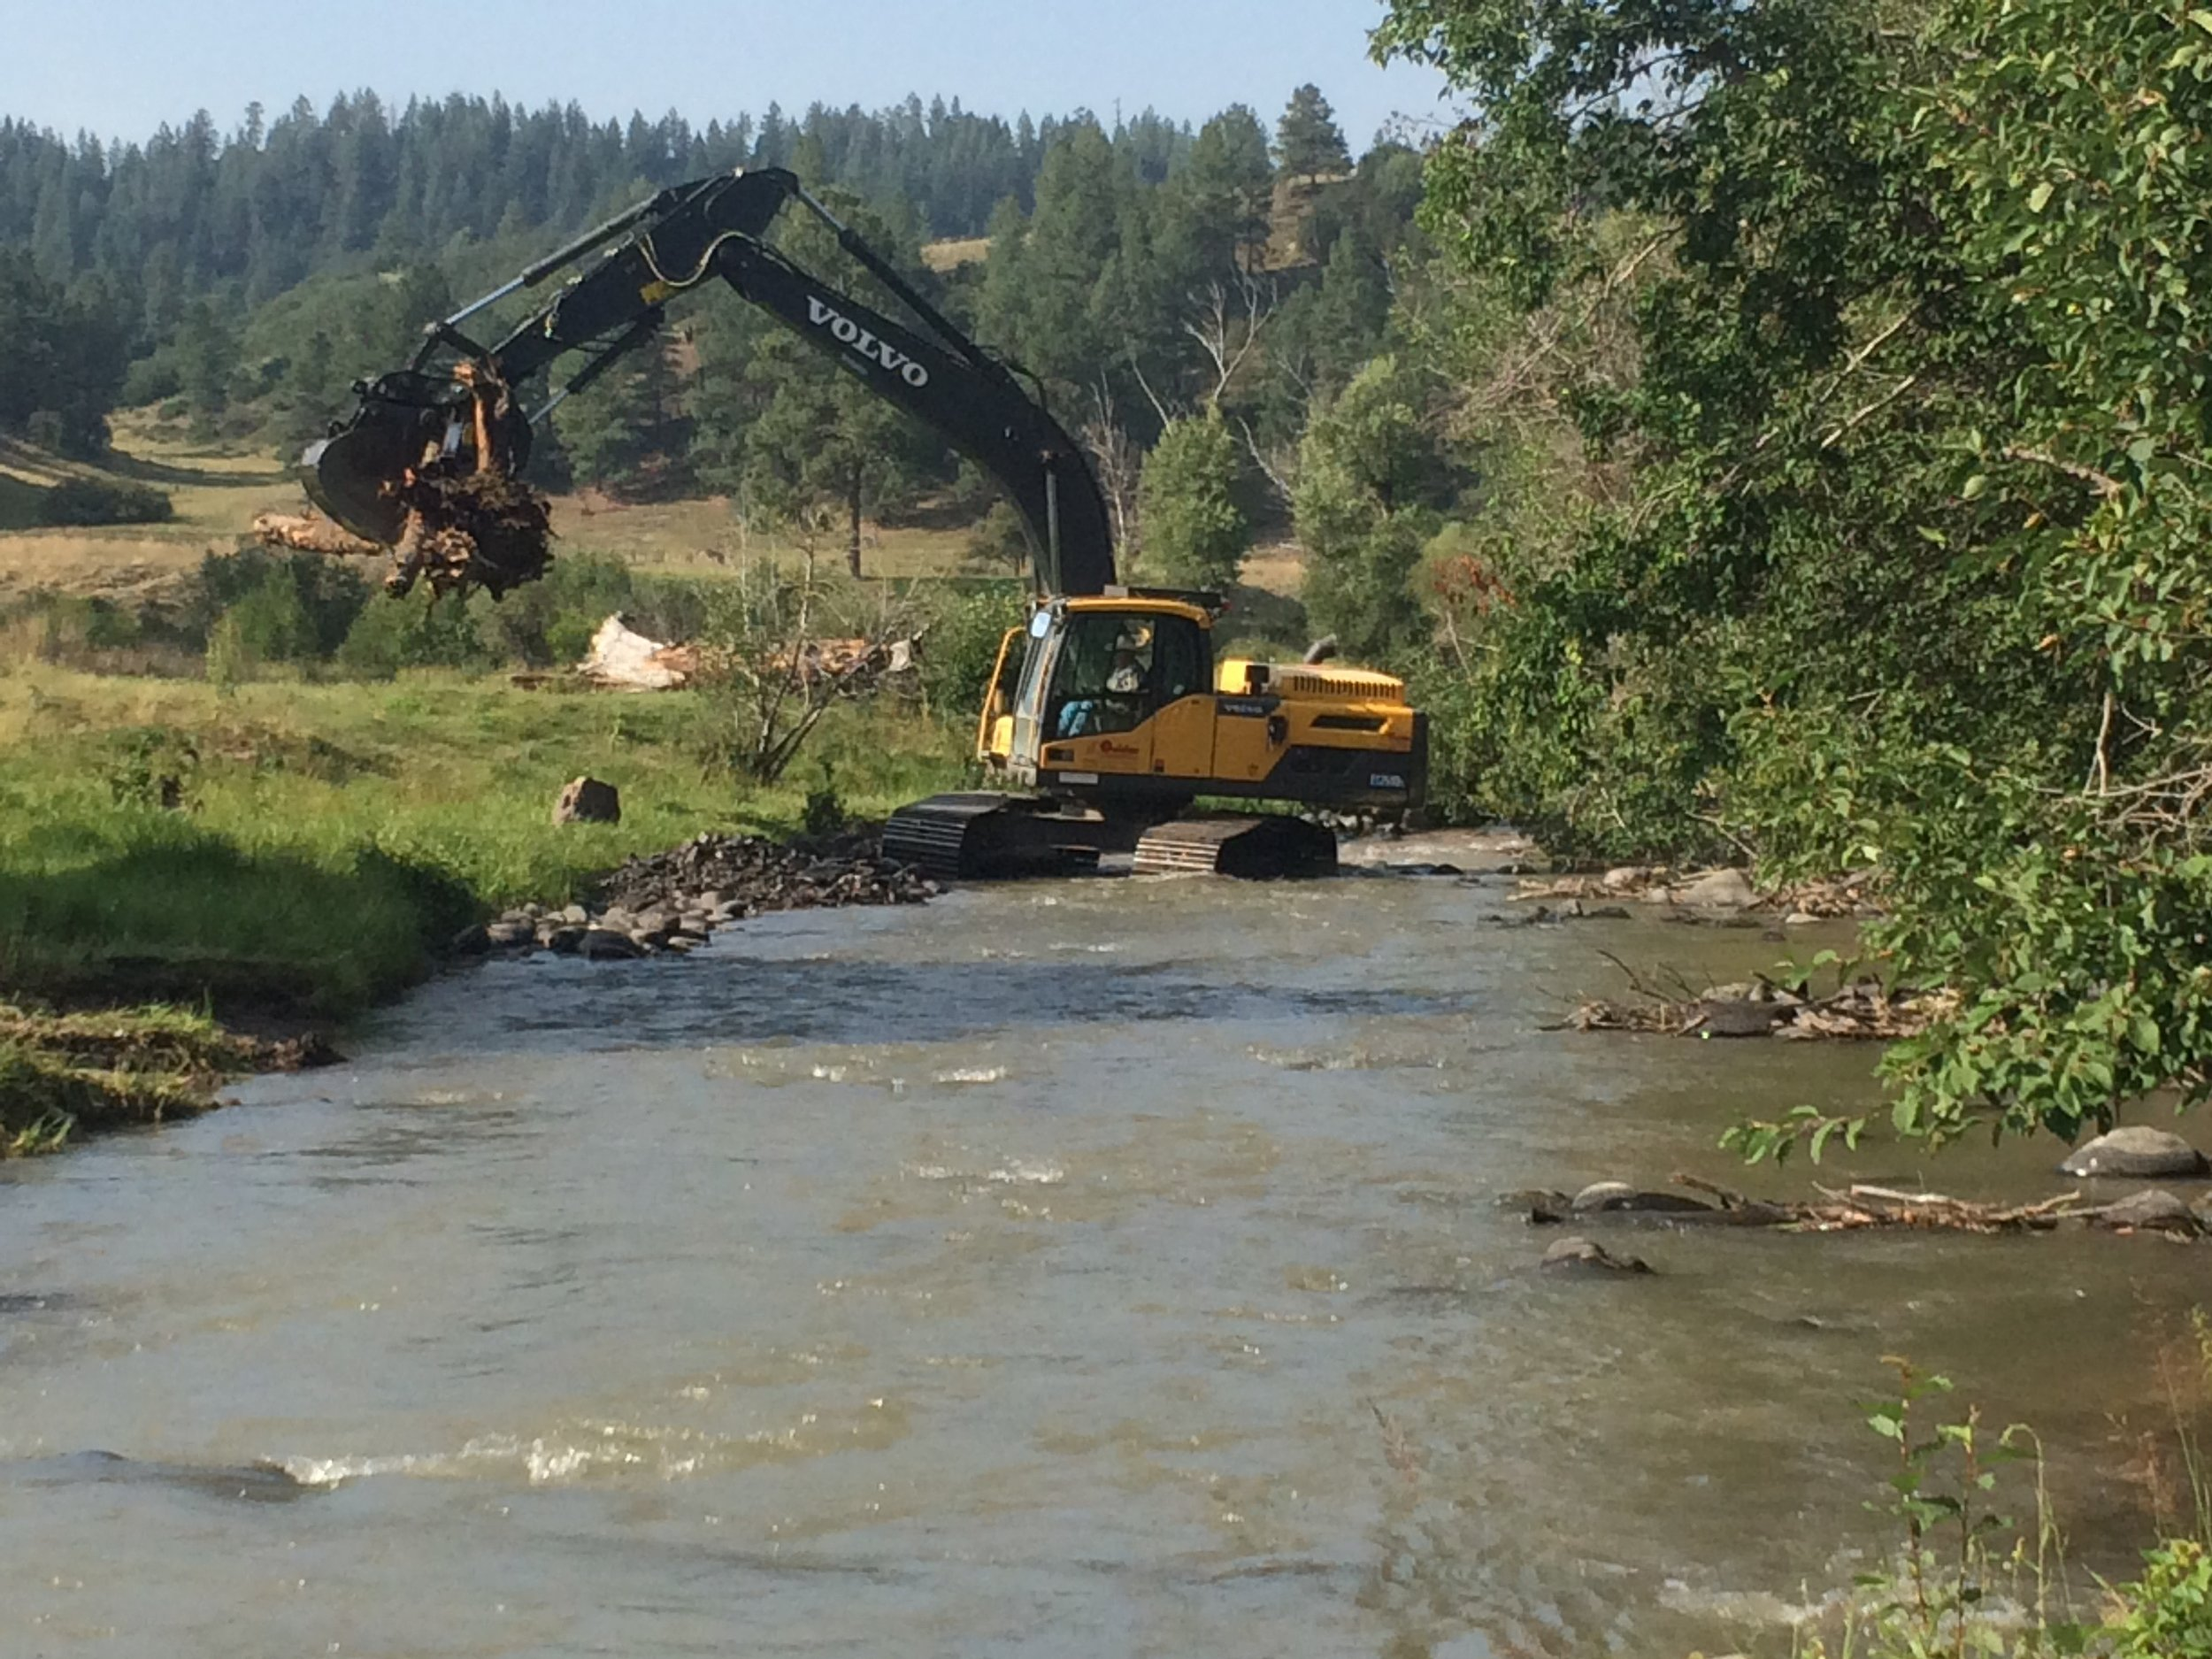 Restoration work on the Navajo River to stabilize banks and improve stream habitat. The channel of the Navajo River was strongly affected by loss of water volume downstream of the Oso Diversion, a Bureau of Reclamation project that moves water from San Juan river tributaries under the Continental Divide into the Rio Chama and hence the Rio Grande basins.